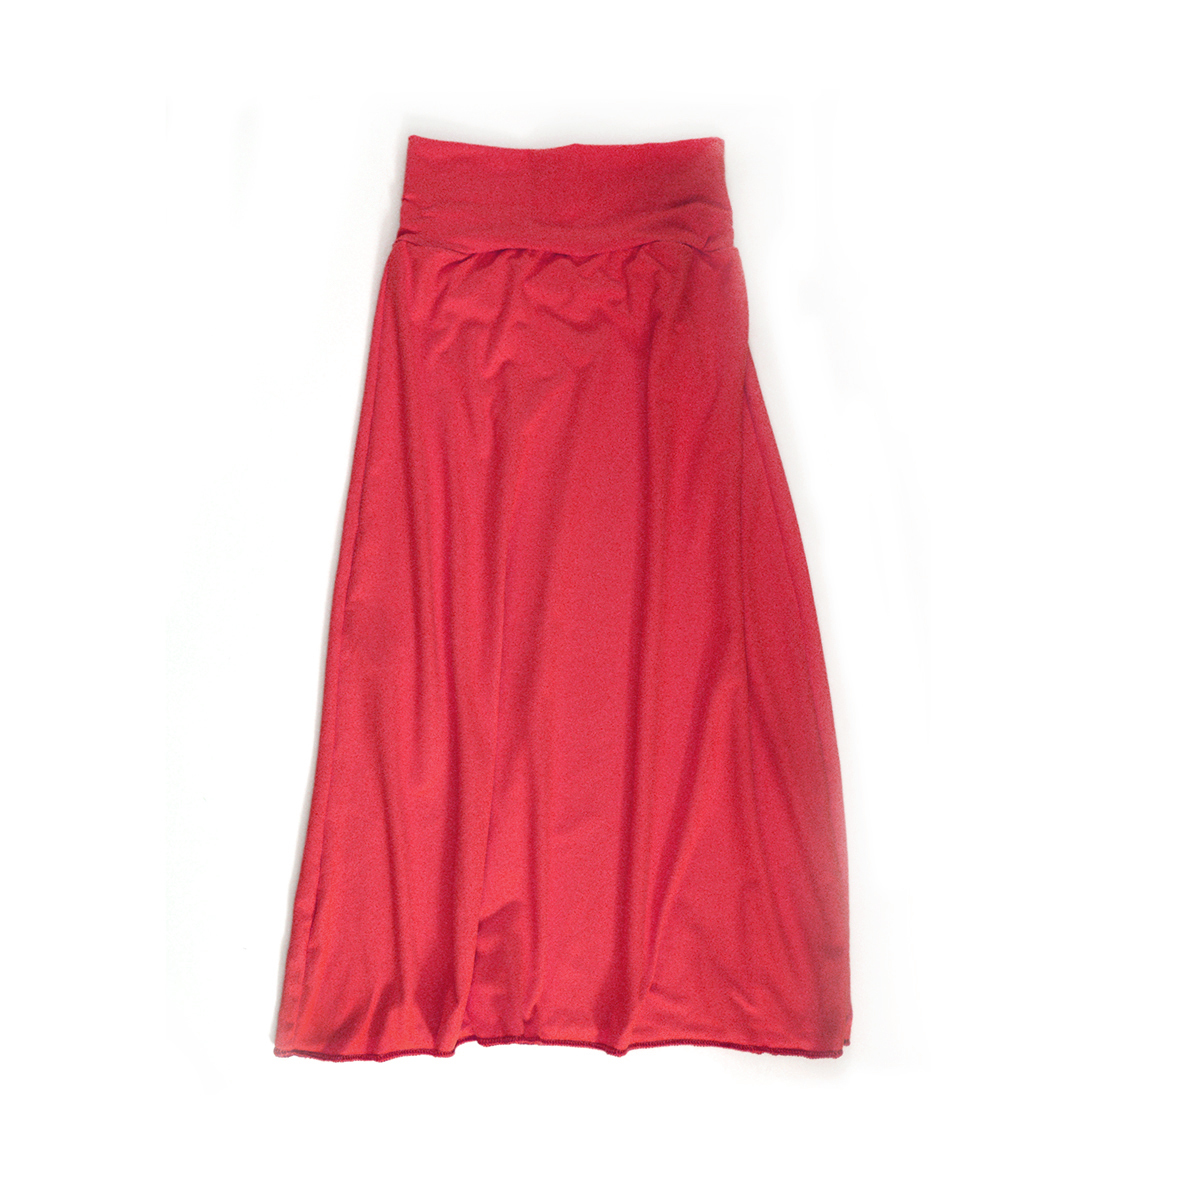 Little Sprout™ Girl's Maxi Skirt -Coral Pink 00848